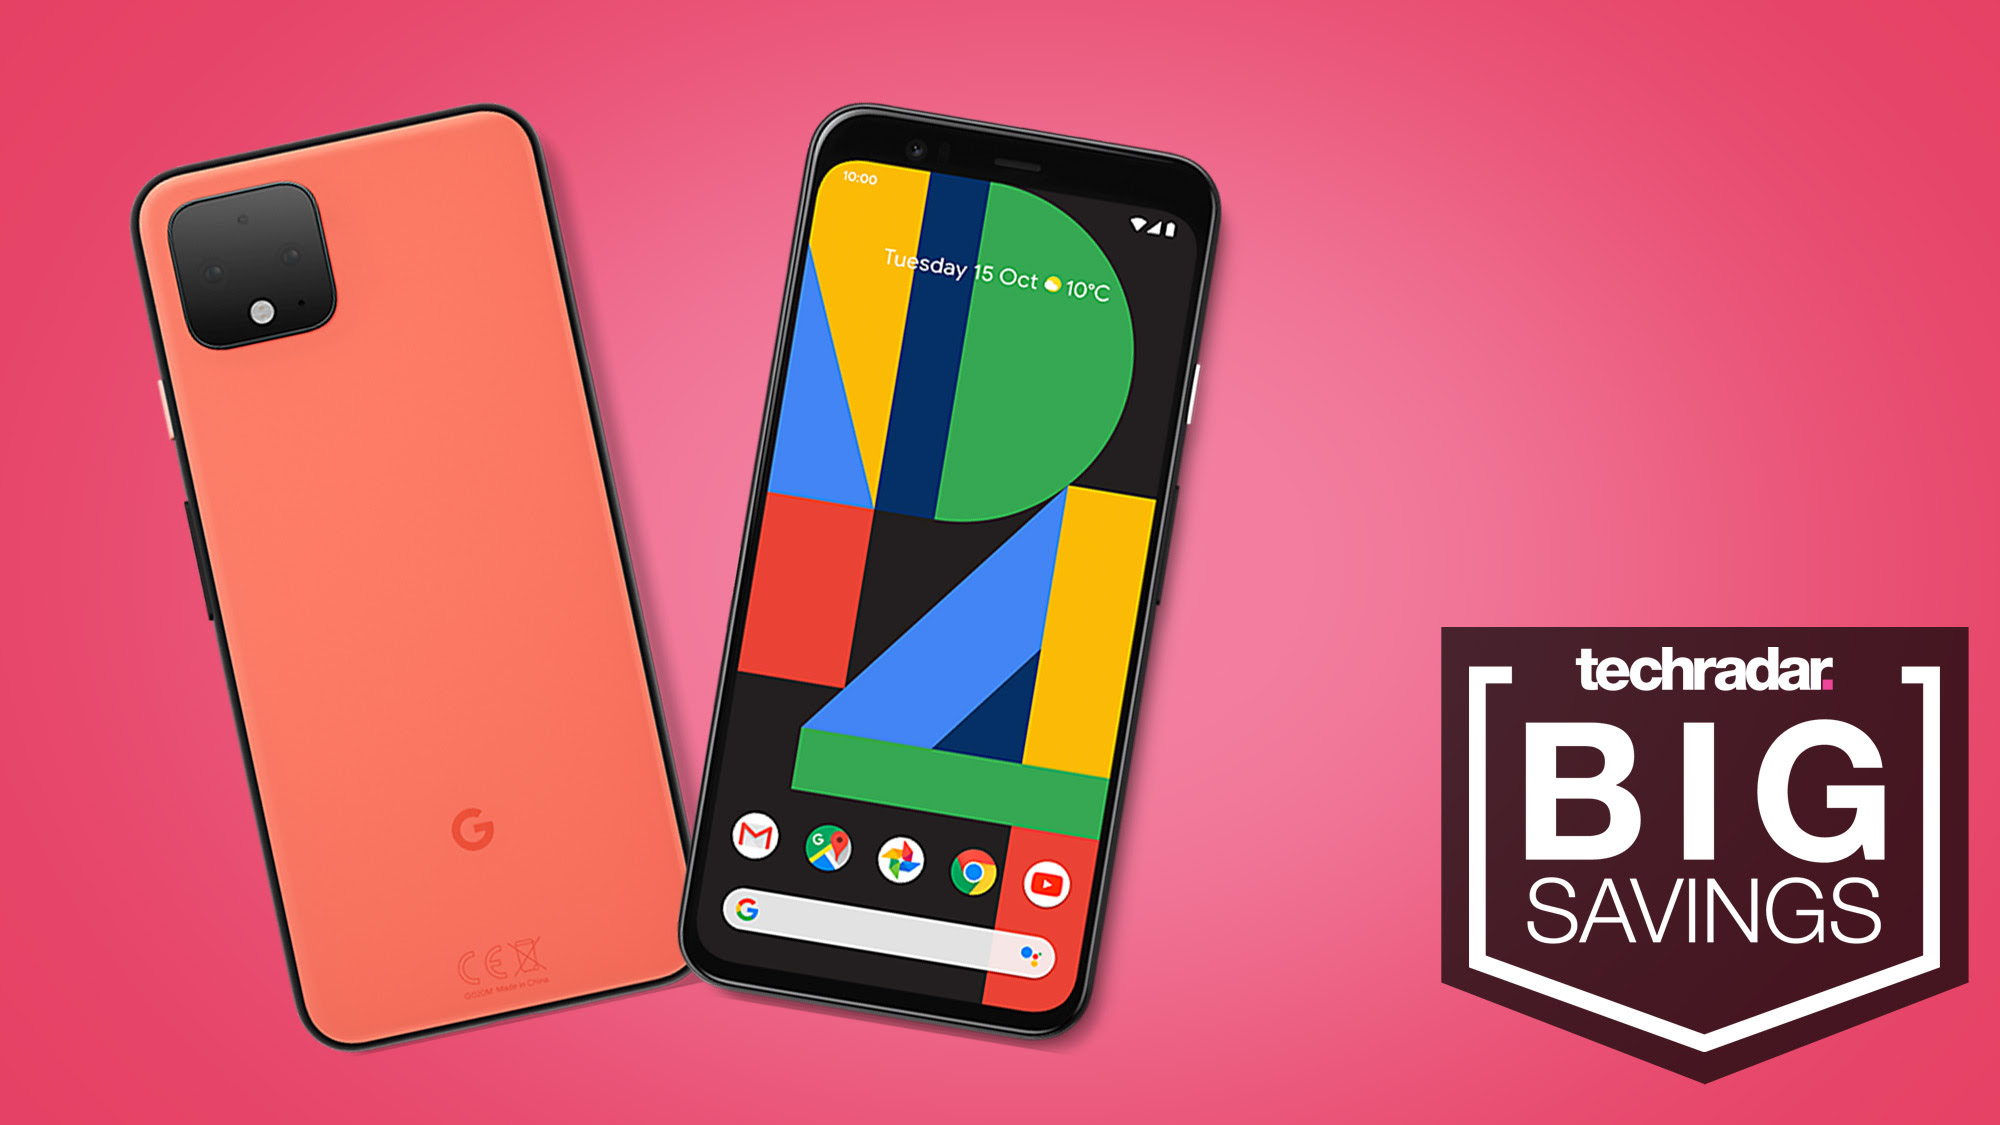 Don't miss out on this exceptional Google Pixel 4 deal and free gift that ends tonight